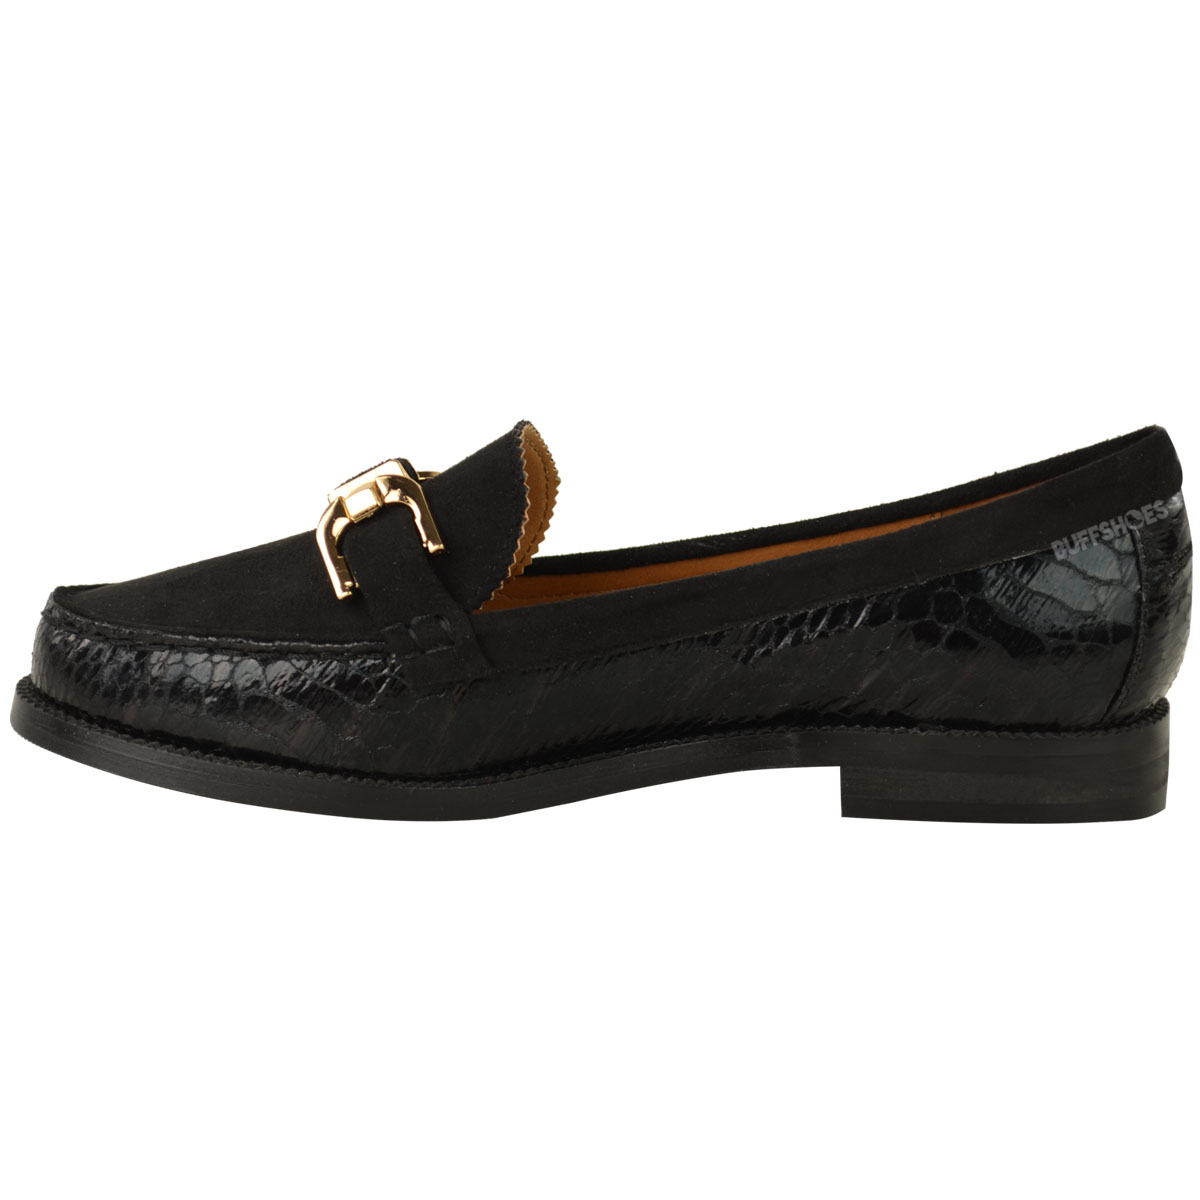 Formal Title Women About Original Loafers Shoes Low Heel Details Oxford Show School MzVSqUpG